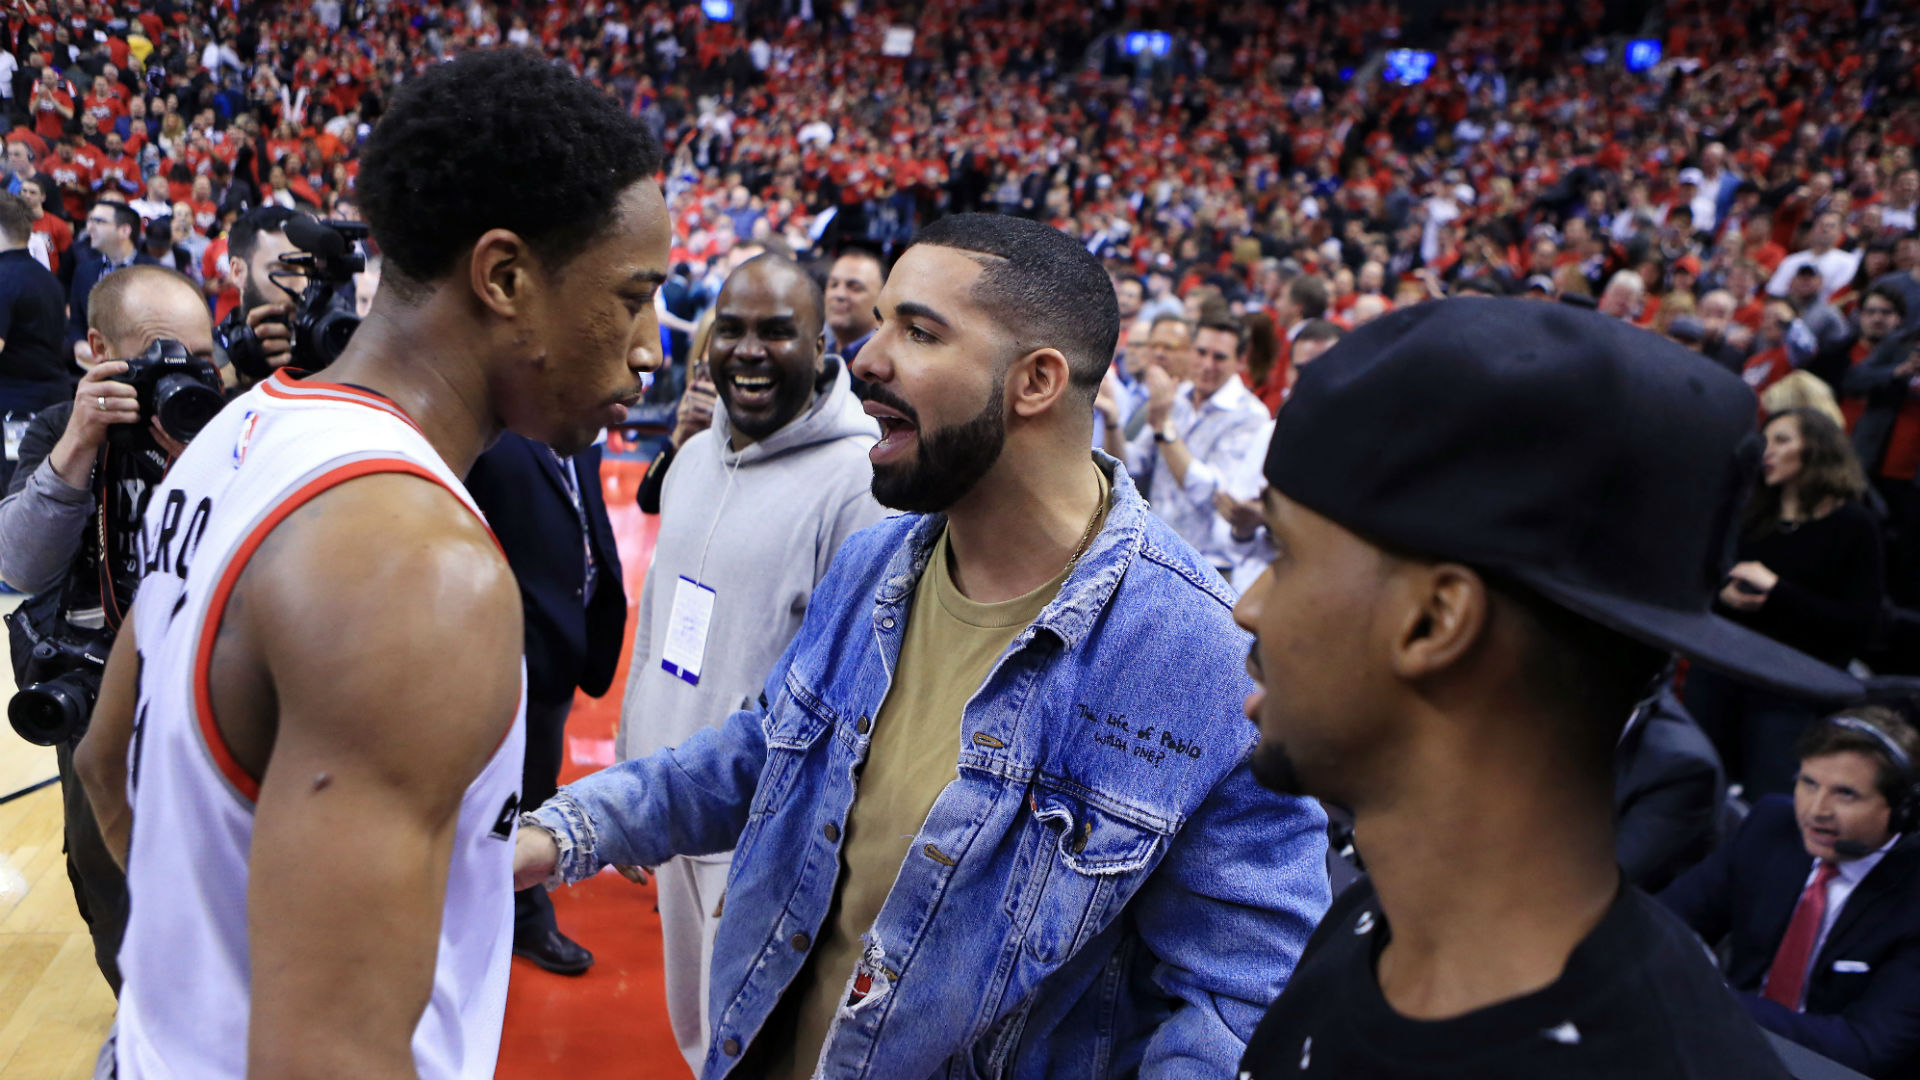 San Antonio Spurs: DeMar DeRozan sought advice from Drake after trade